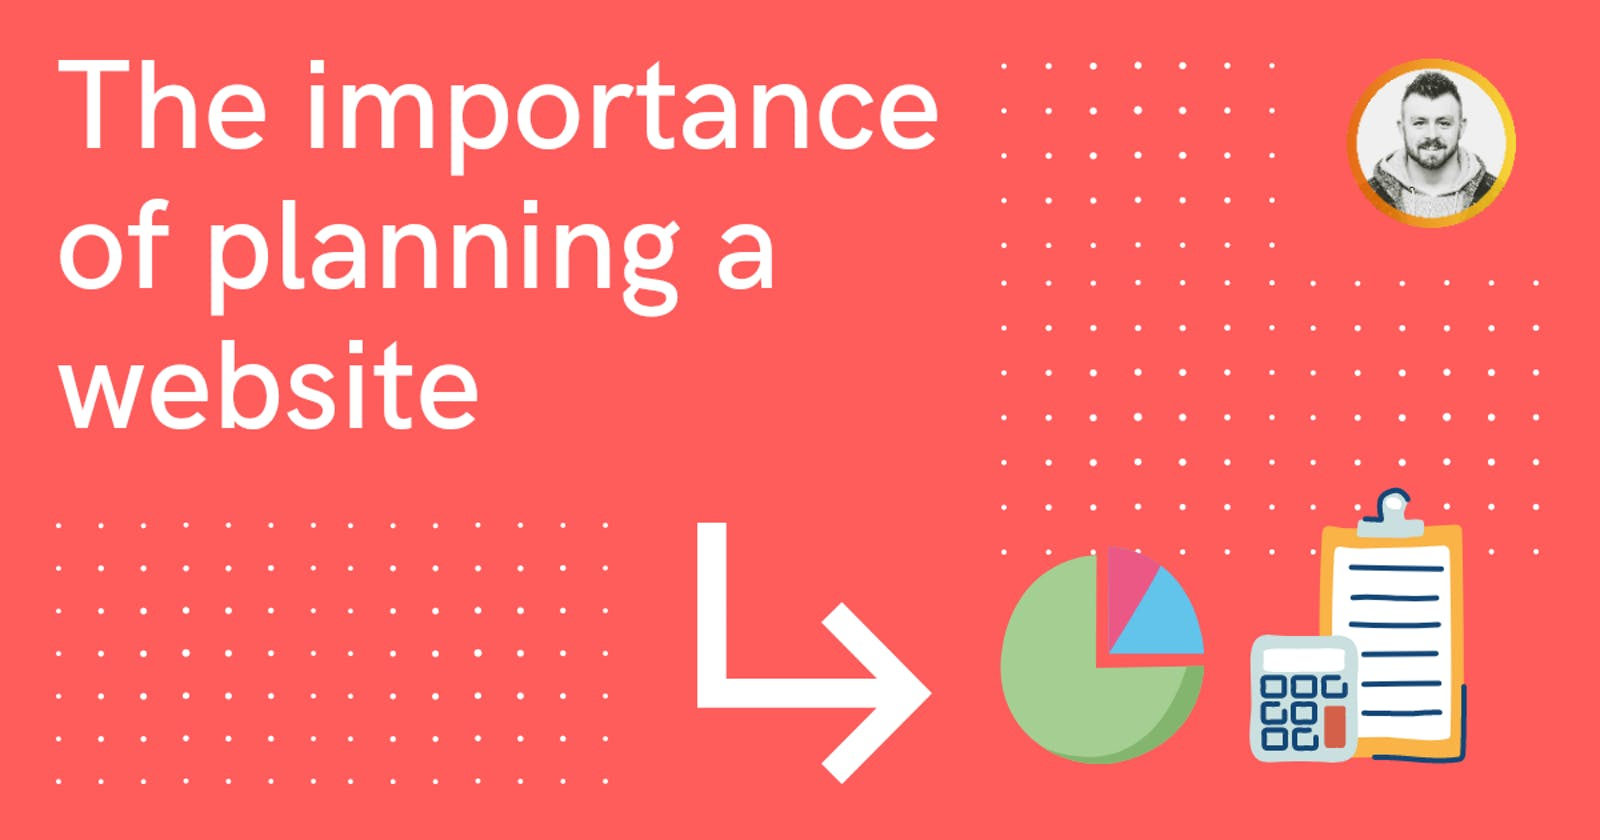 The importance of planning a website